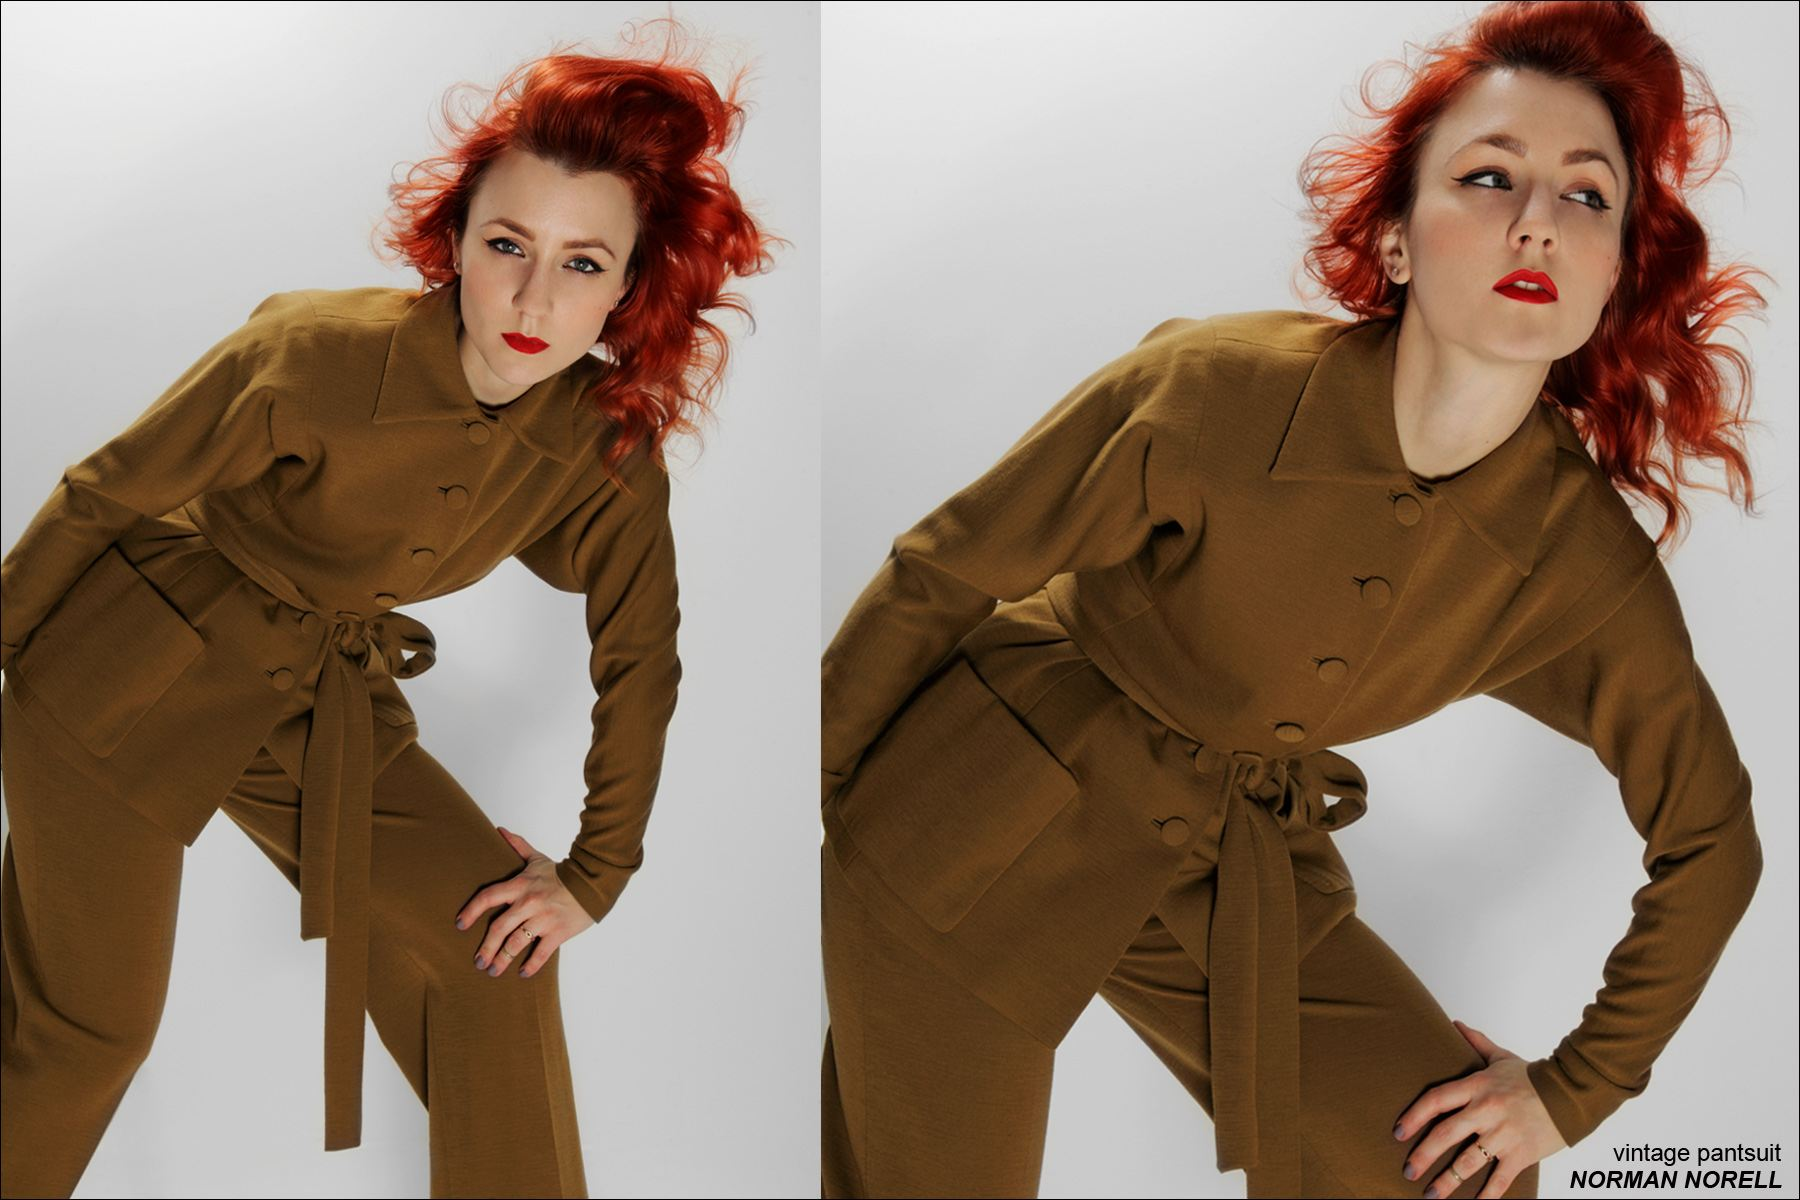 Amber Doyle, New York City designer, photographed by Alexander Thompson in vintage Norman Norell for Ponyboy Magazine.